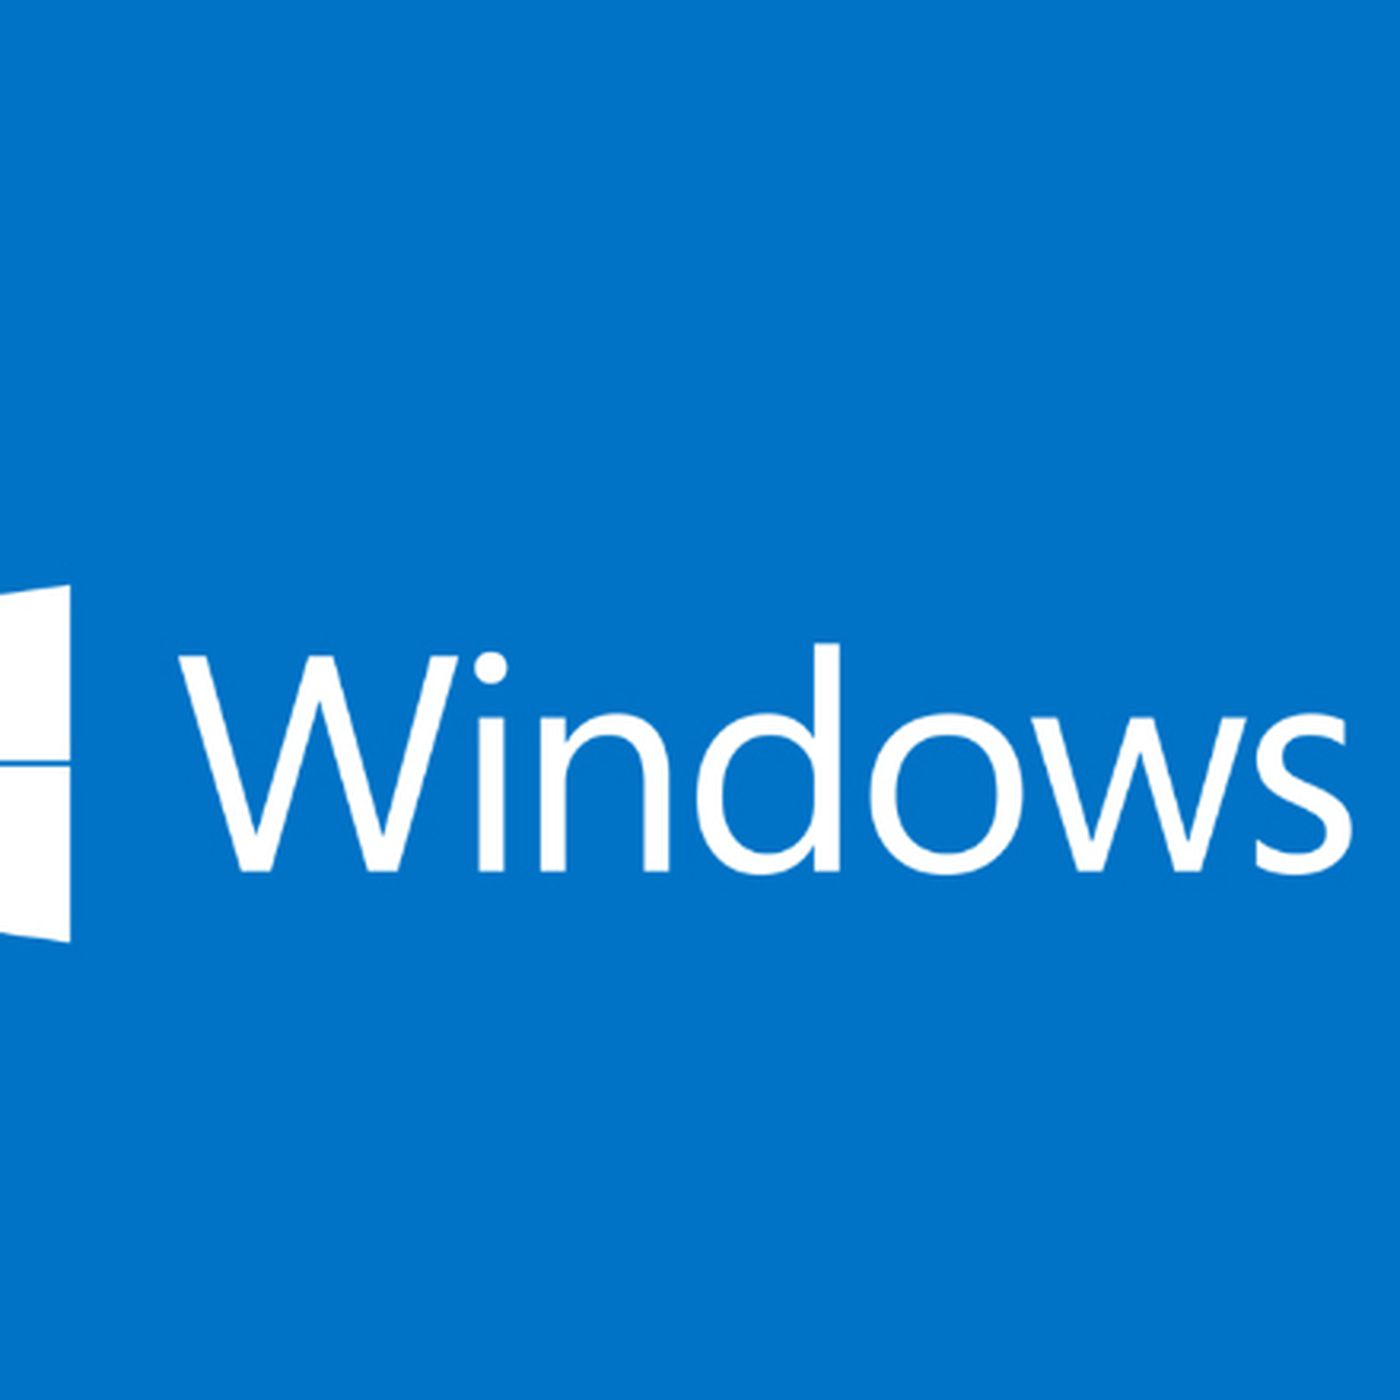 Windows 10 Technical Preview now available to download - The